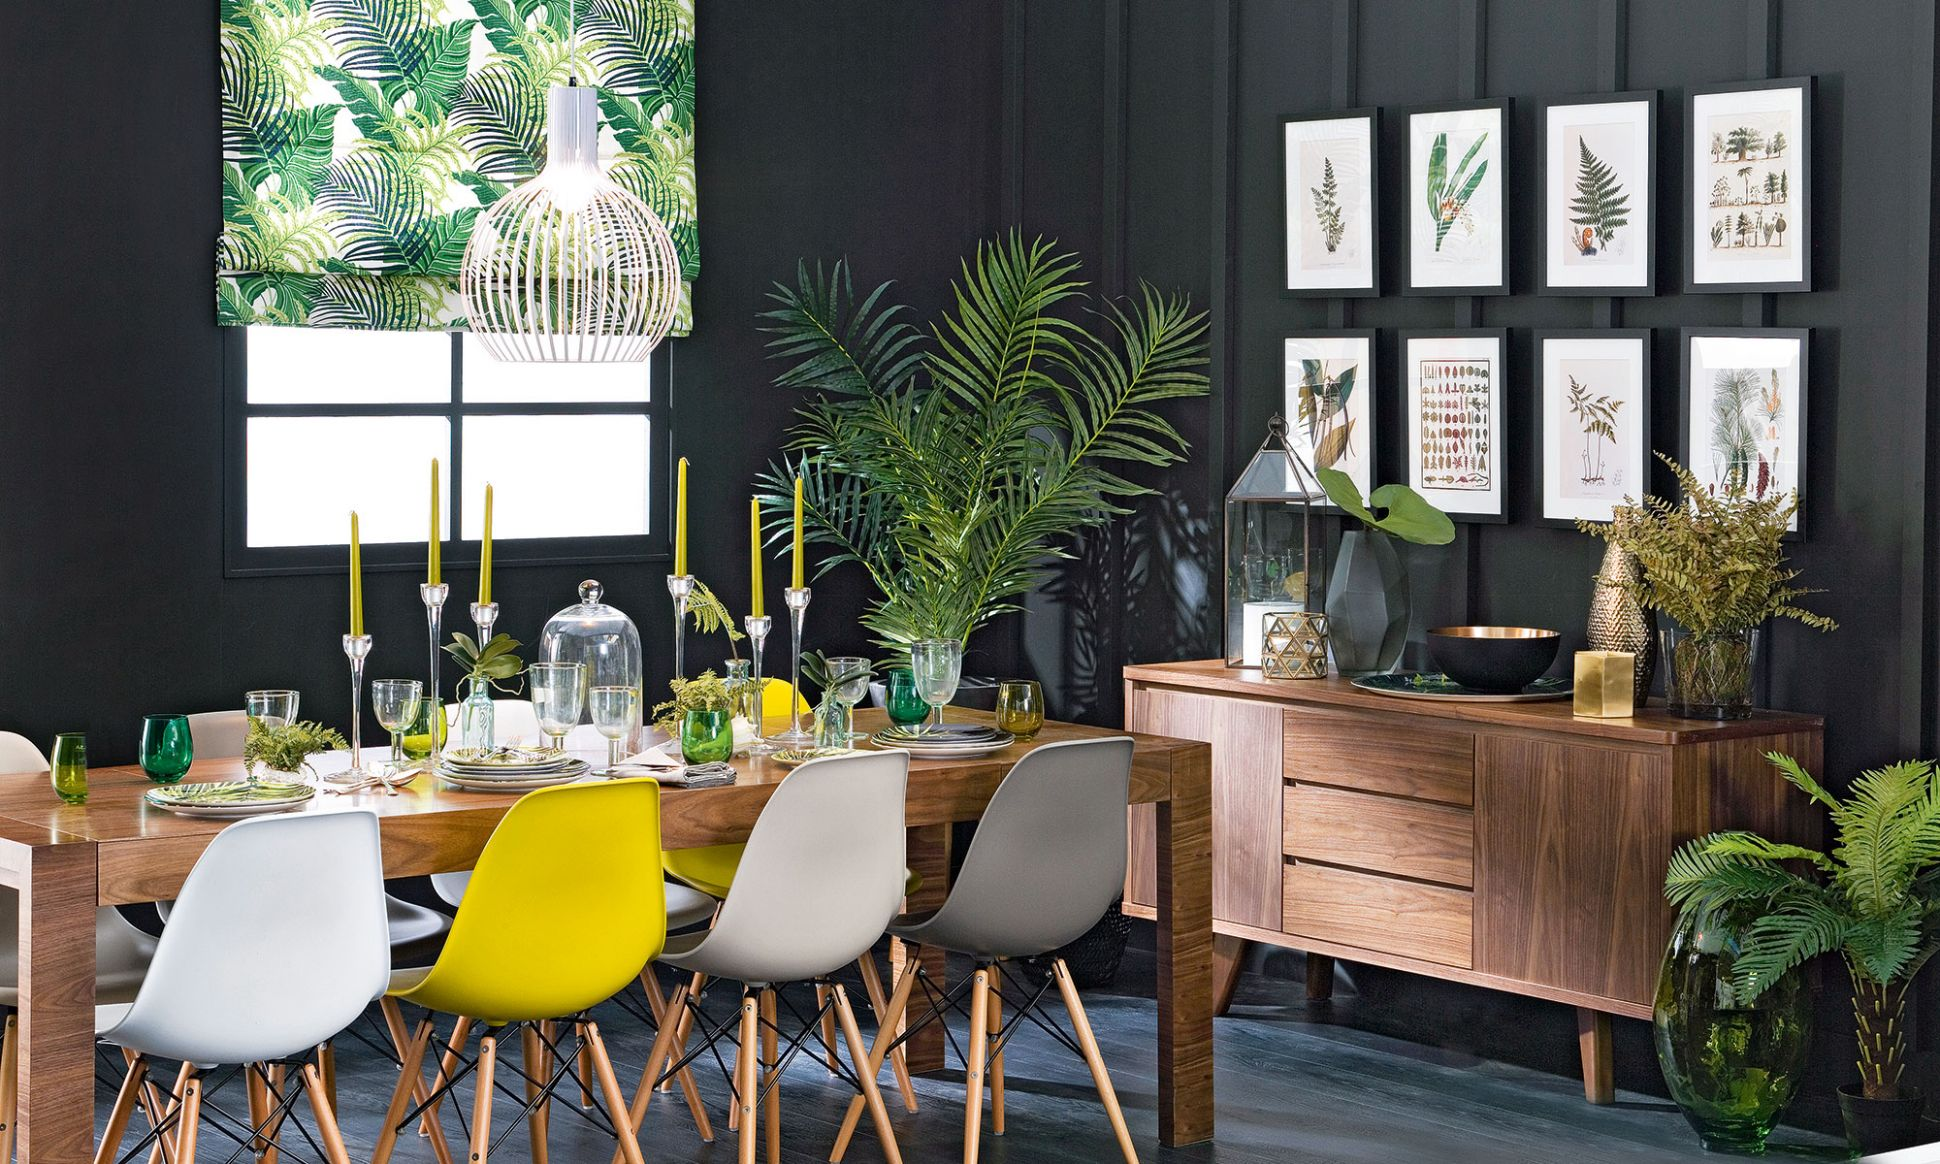 Budget dining room ideas – serve up a fresh look on a shoestring